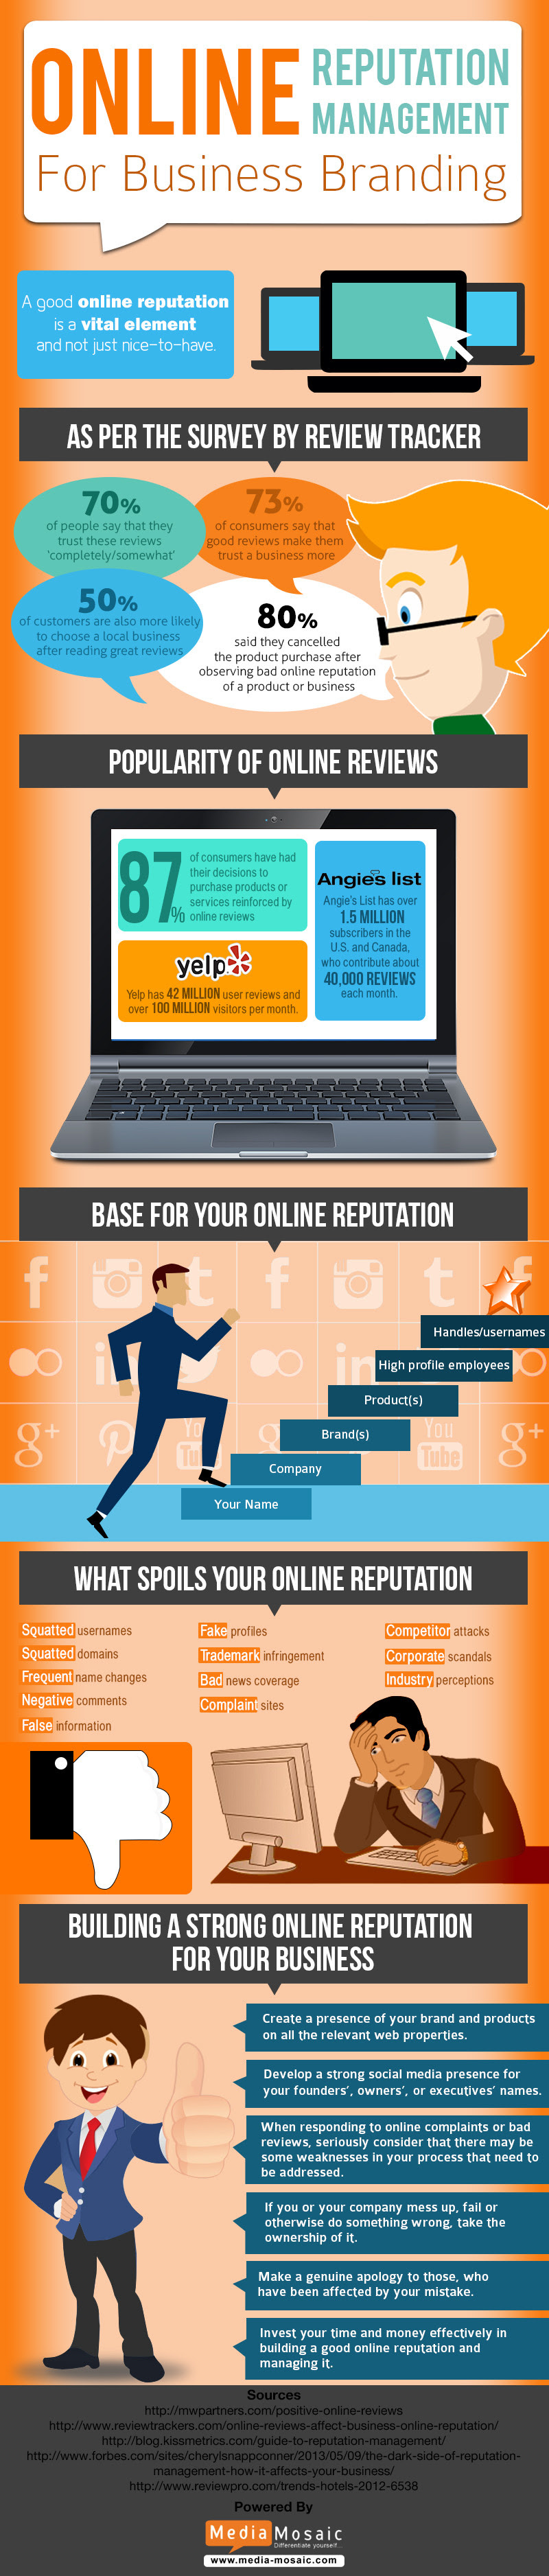 Infographic: Online Reputation Management for Business Branding